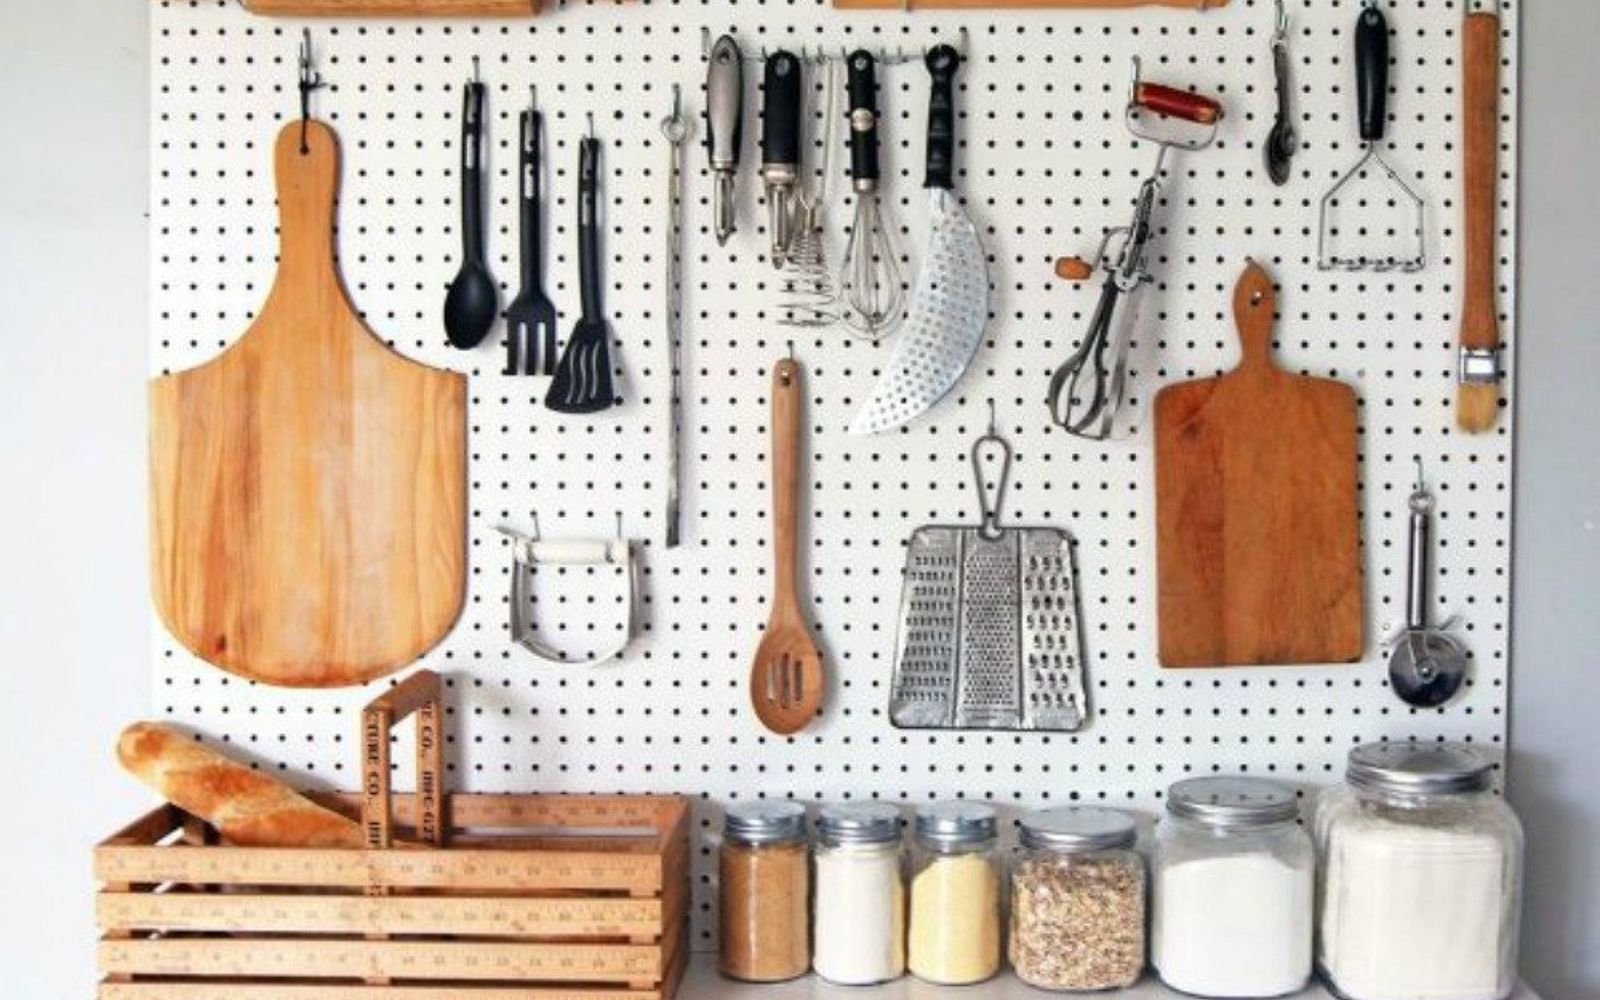 s 13 storage ideas that will instantly declutter your kitchen drawers, kitchen design, organizing, storage ideas, Hang everything on a pegboard wall